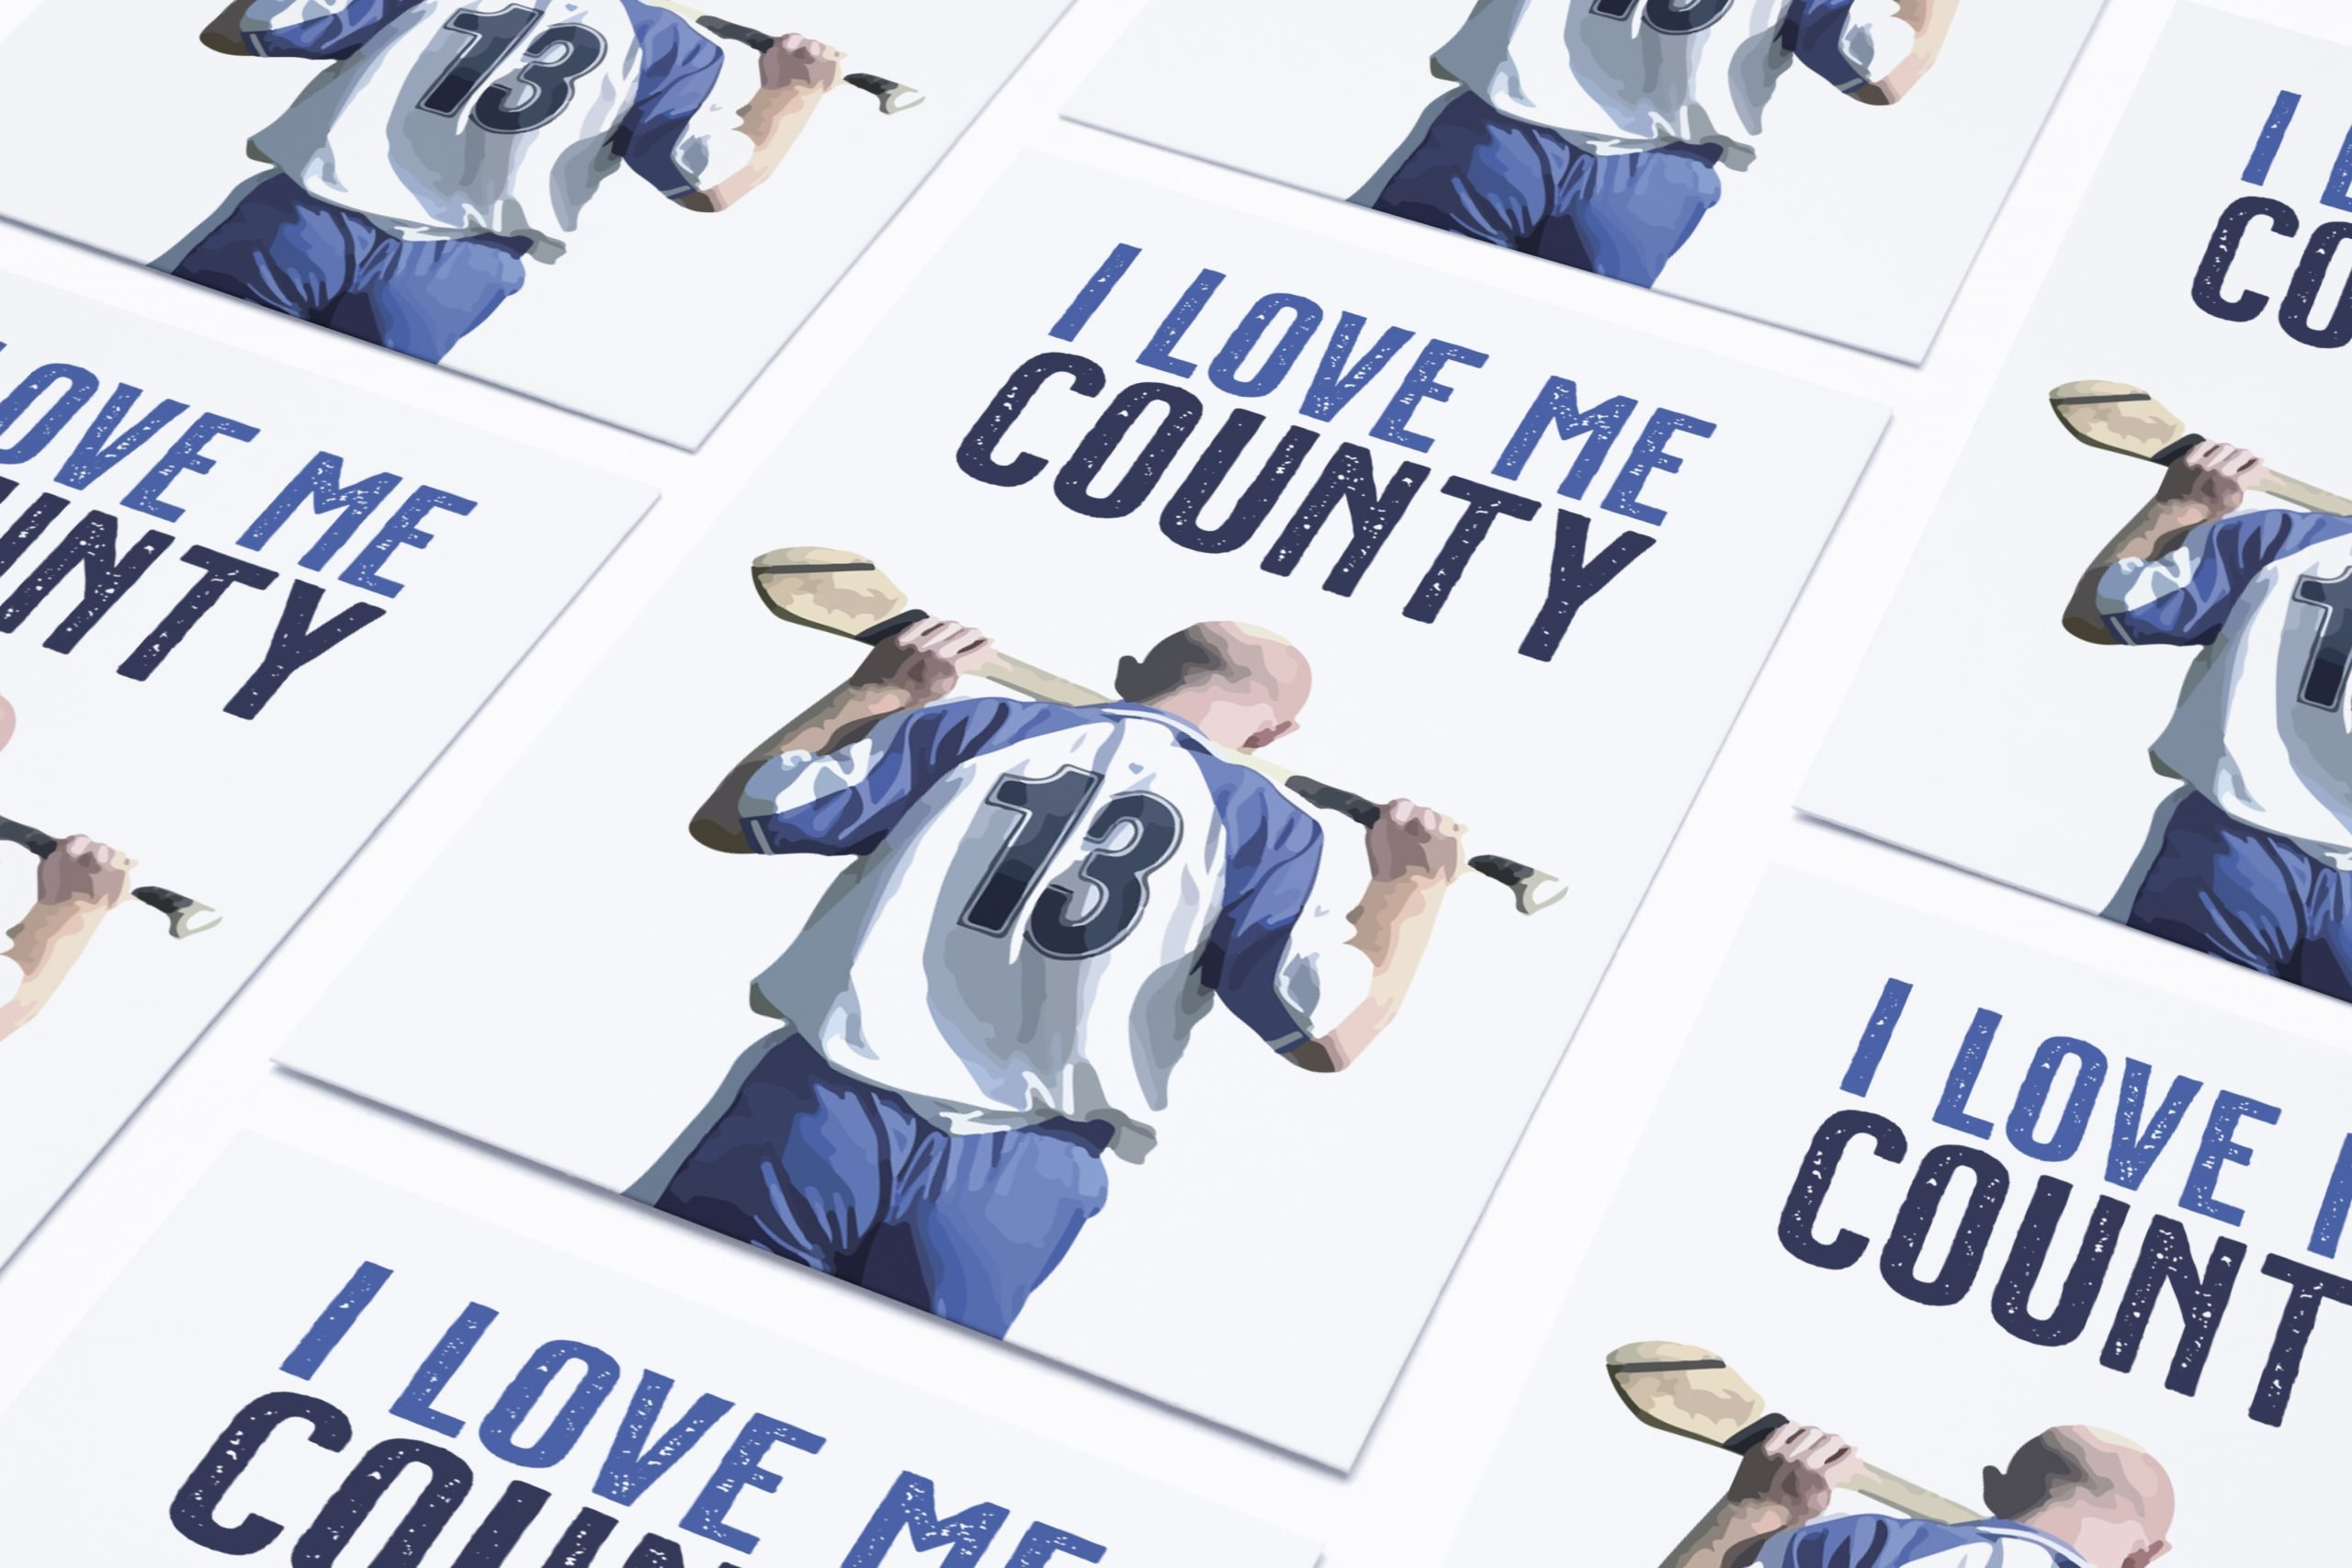 I Love Me County | Homebird | Irish Wall Art | Artwork